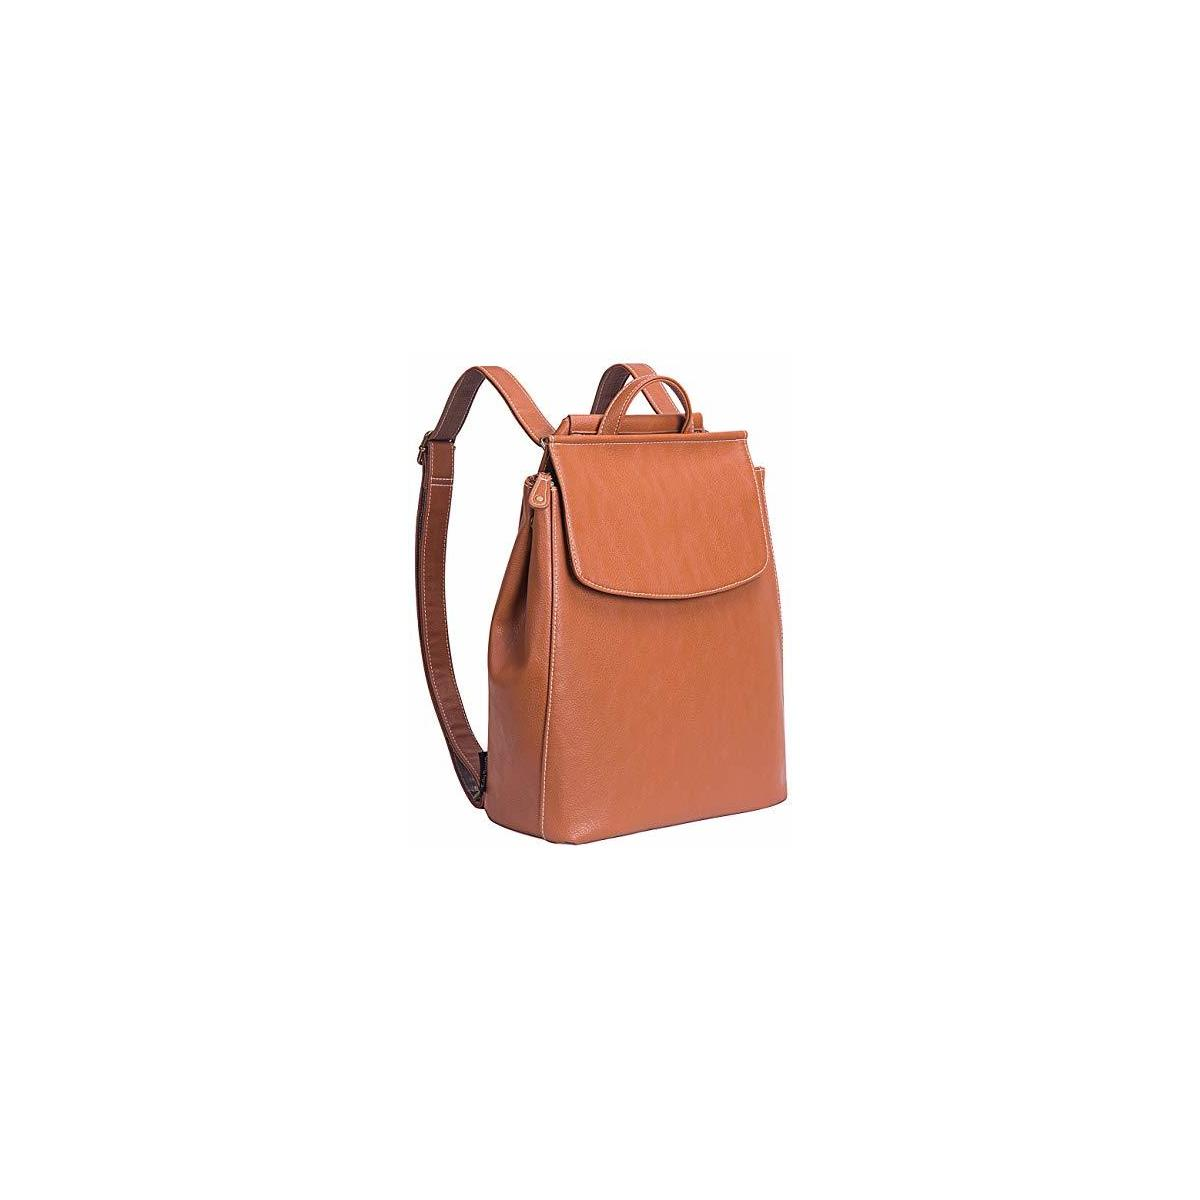 Lily Queen PU Leather Backpack for Women Small Backpack Purse Fashion Casual Travel Bag